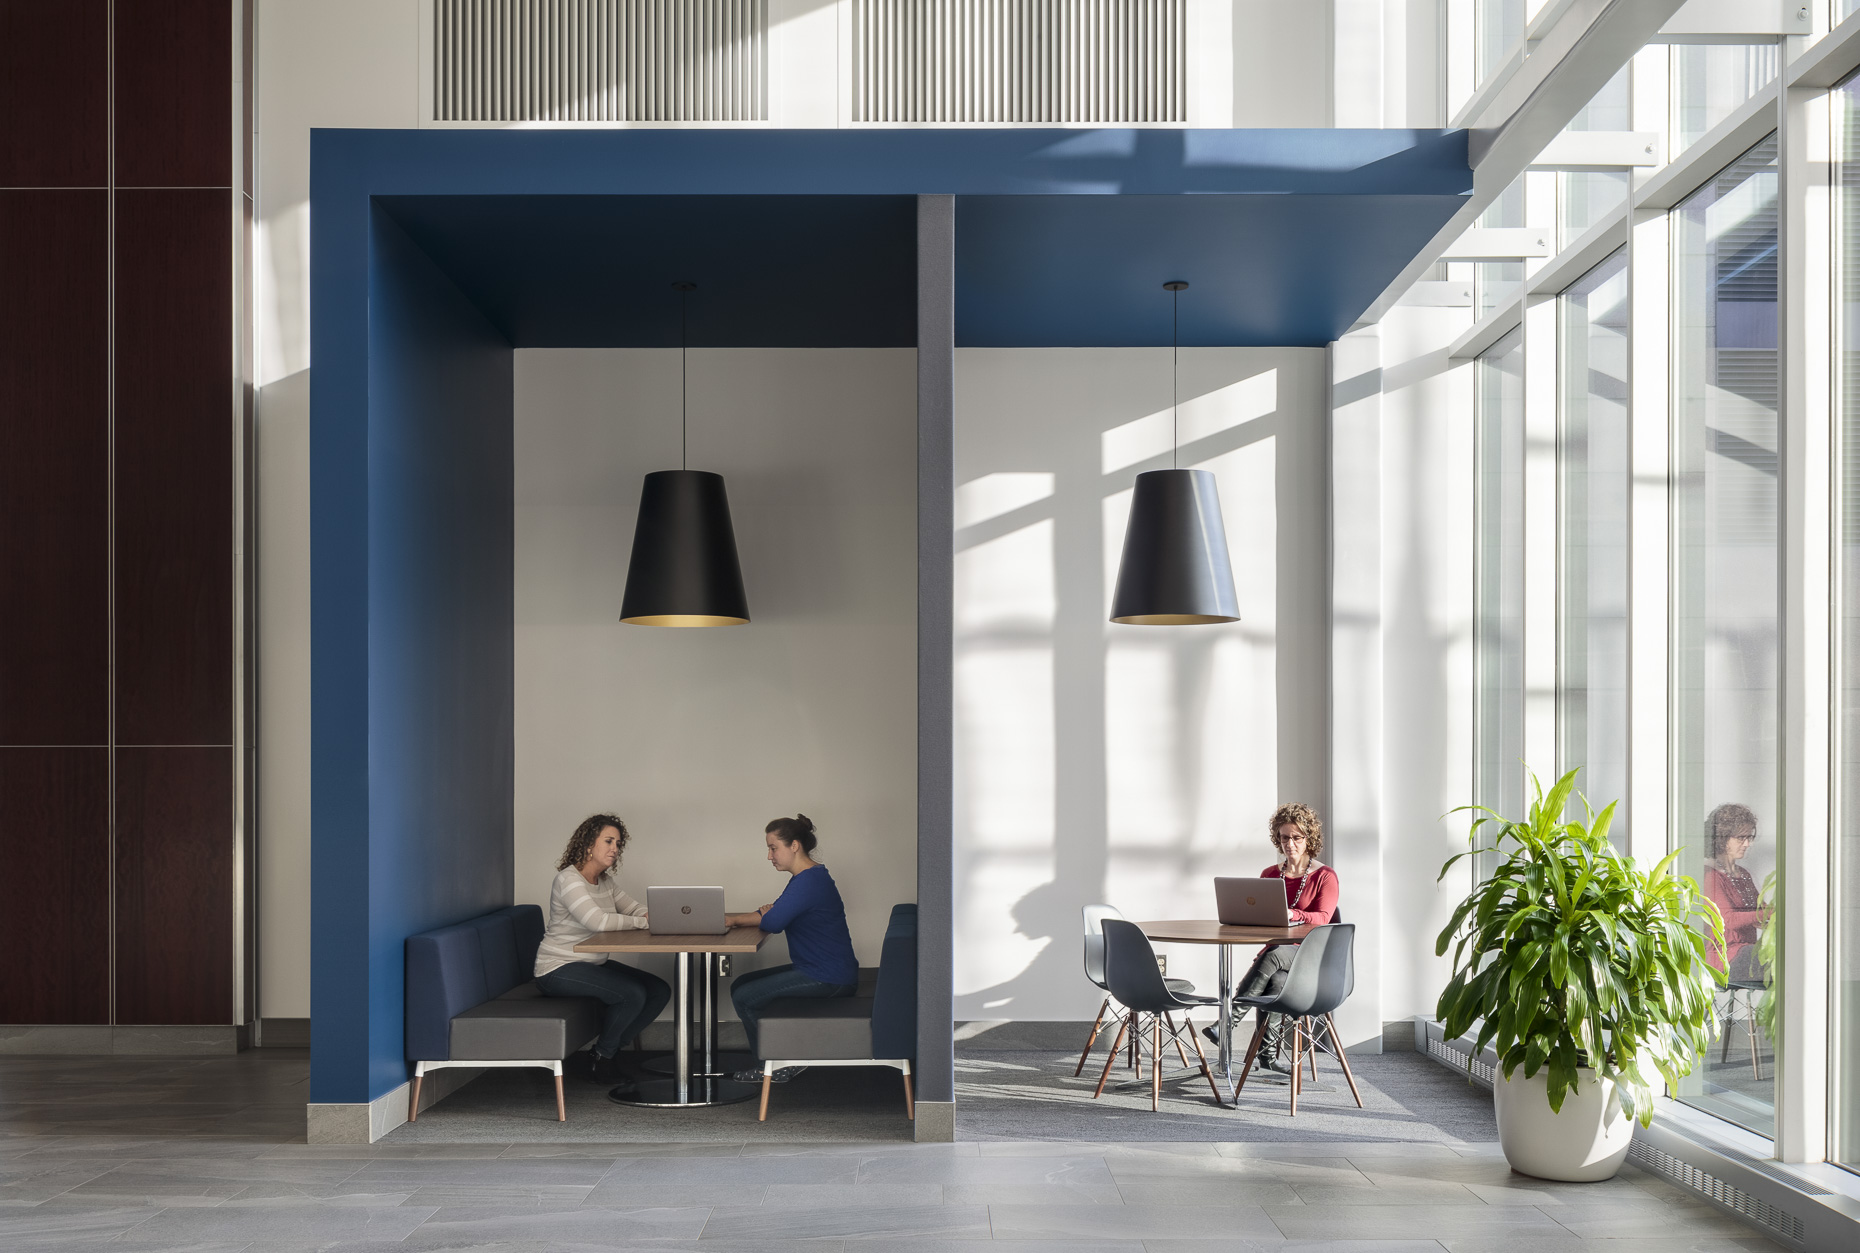 Nationwide HUB by BHDP Architecture photographed by Lauren K Davis based in Columbus, Ohio